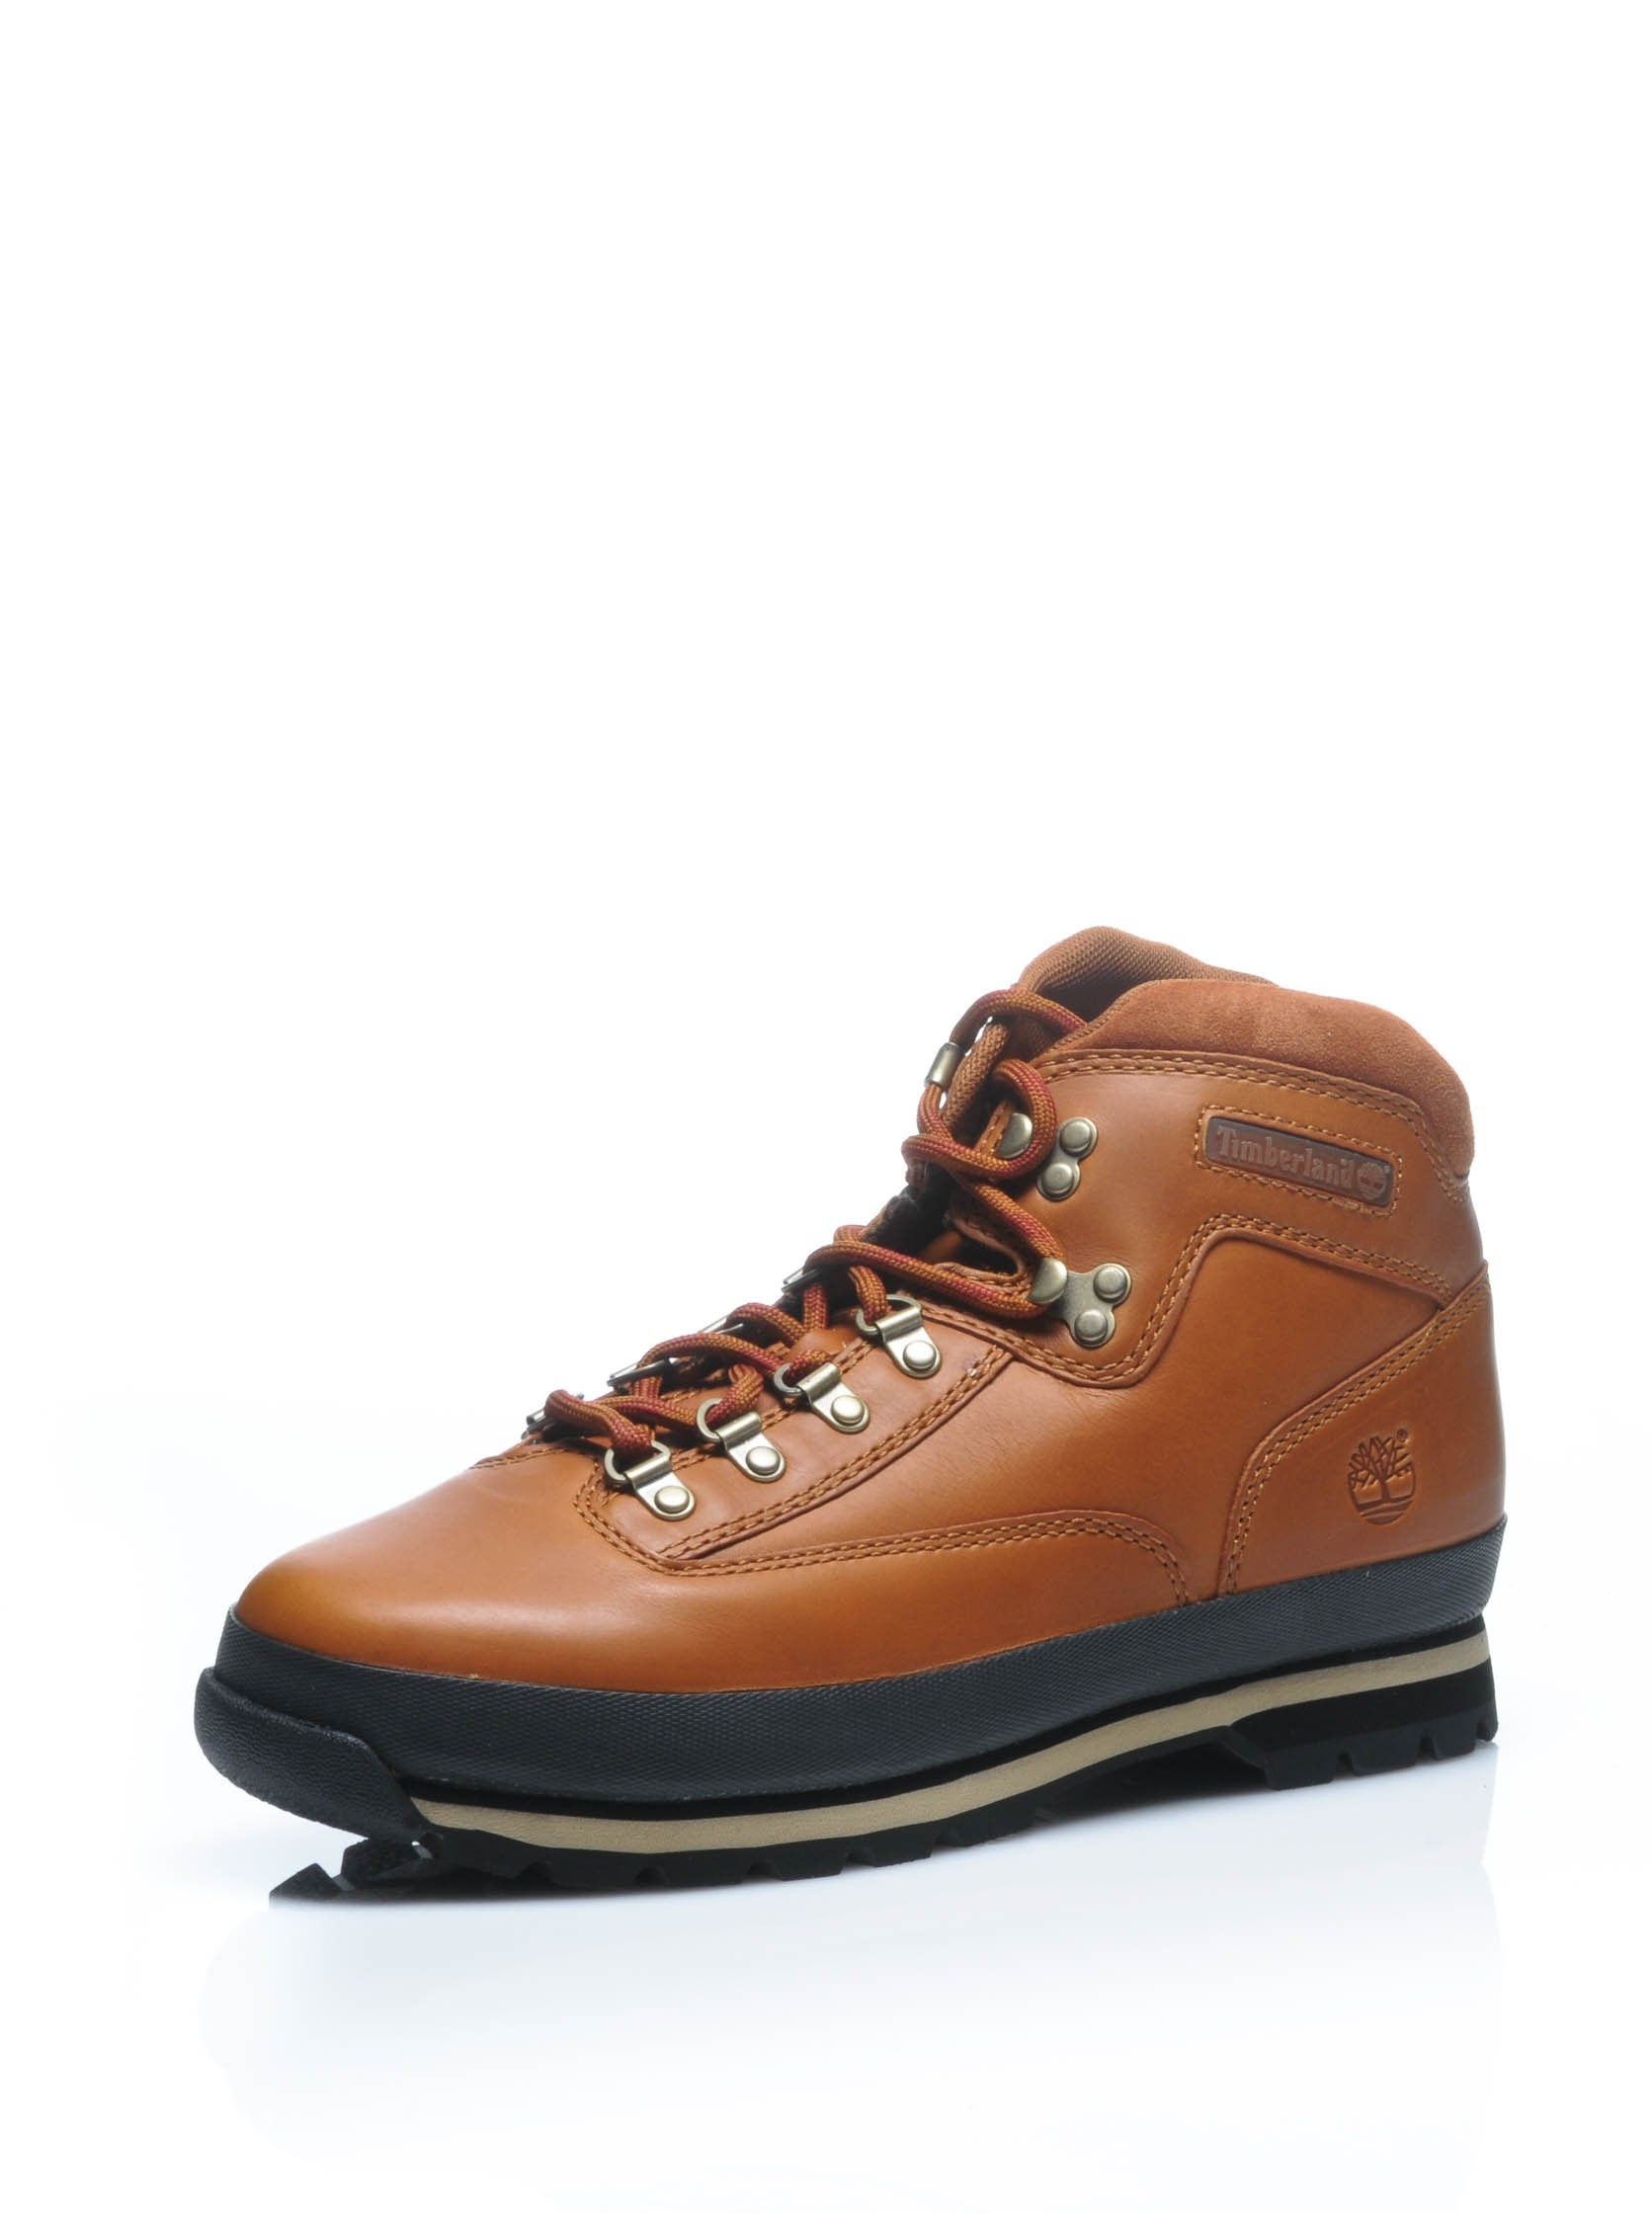 timberland mens eurohiker LTR MD BRN MEDI hi top boots 6602A sneakers (uk 7.5 us 8 eu 41.5) by Timberland (Image #5)